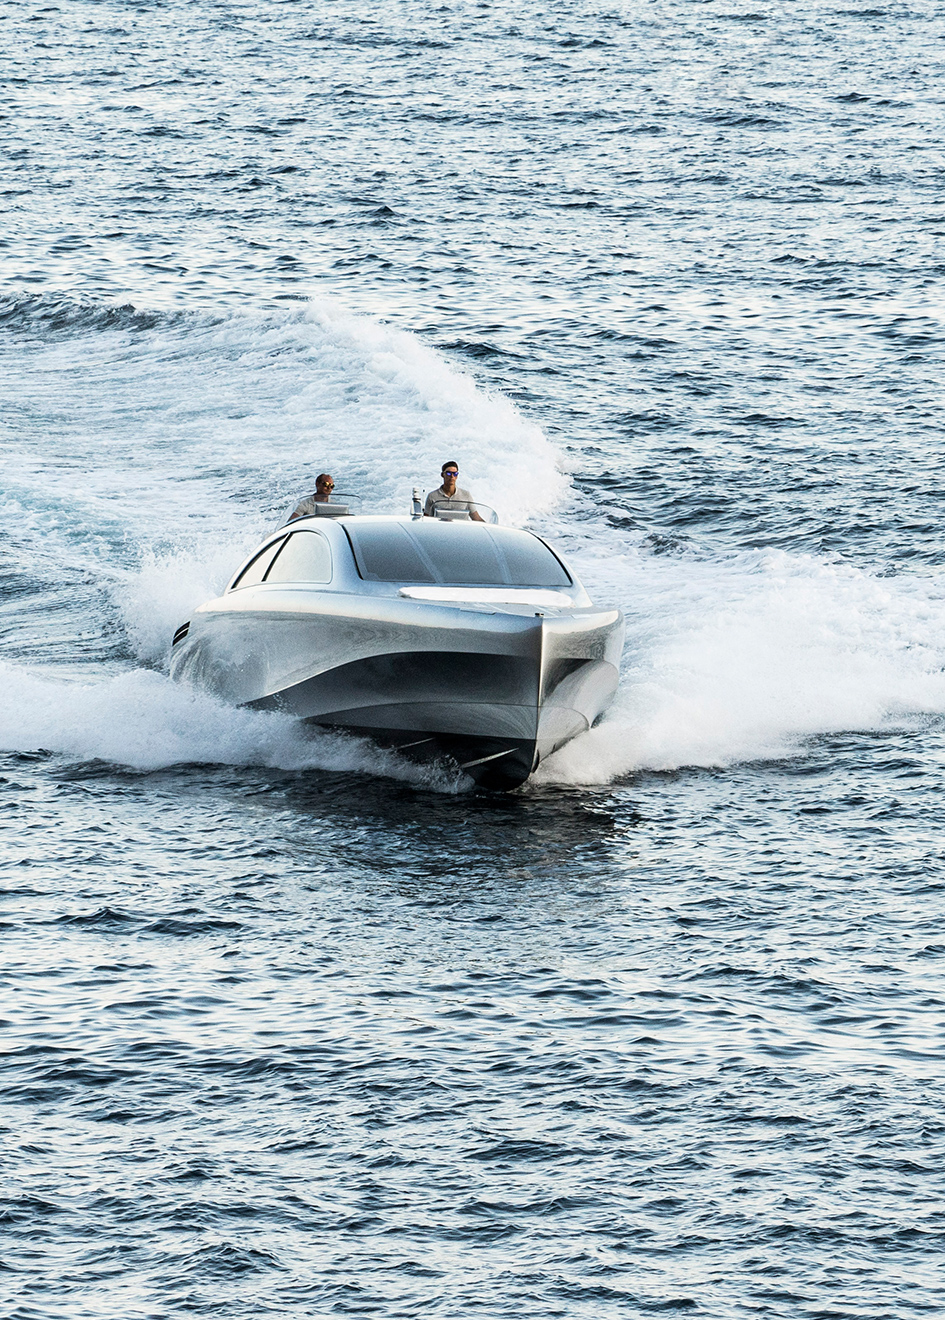 bow-running-shot-of-the-mercedes-benz-speedboat-arrow-460-gt